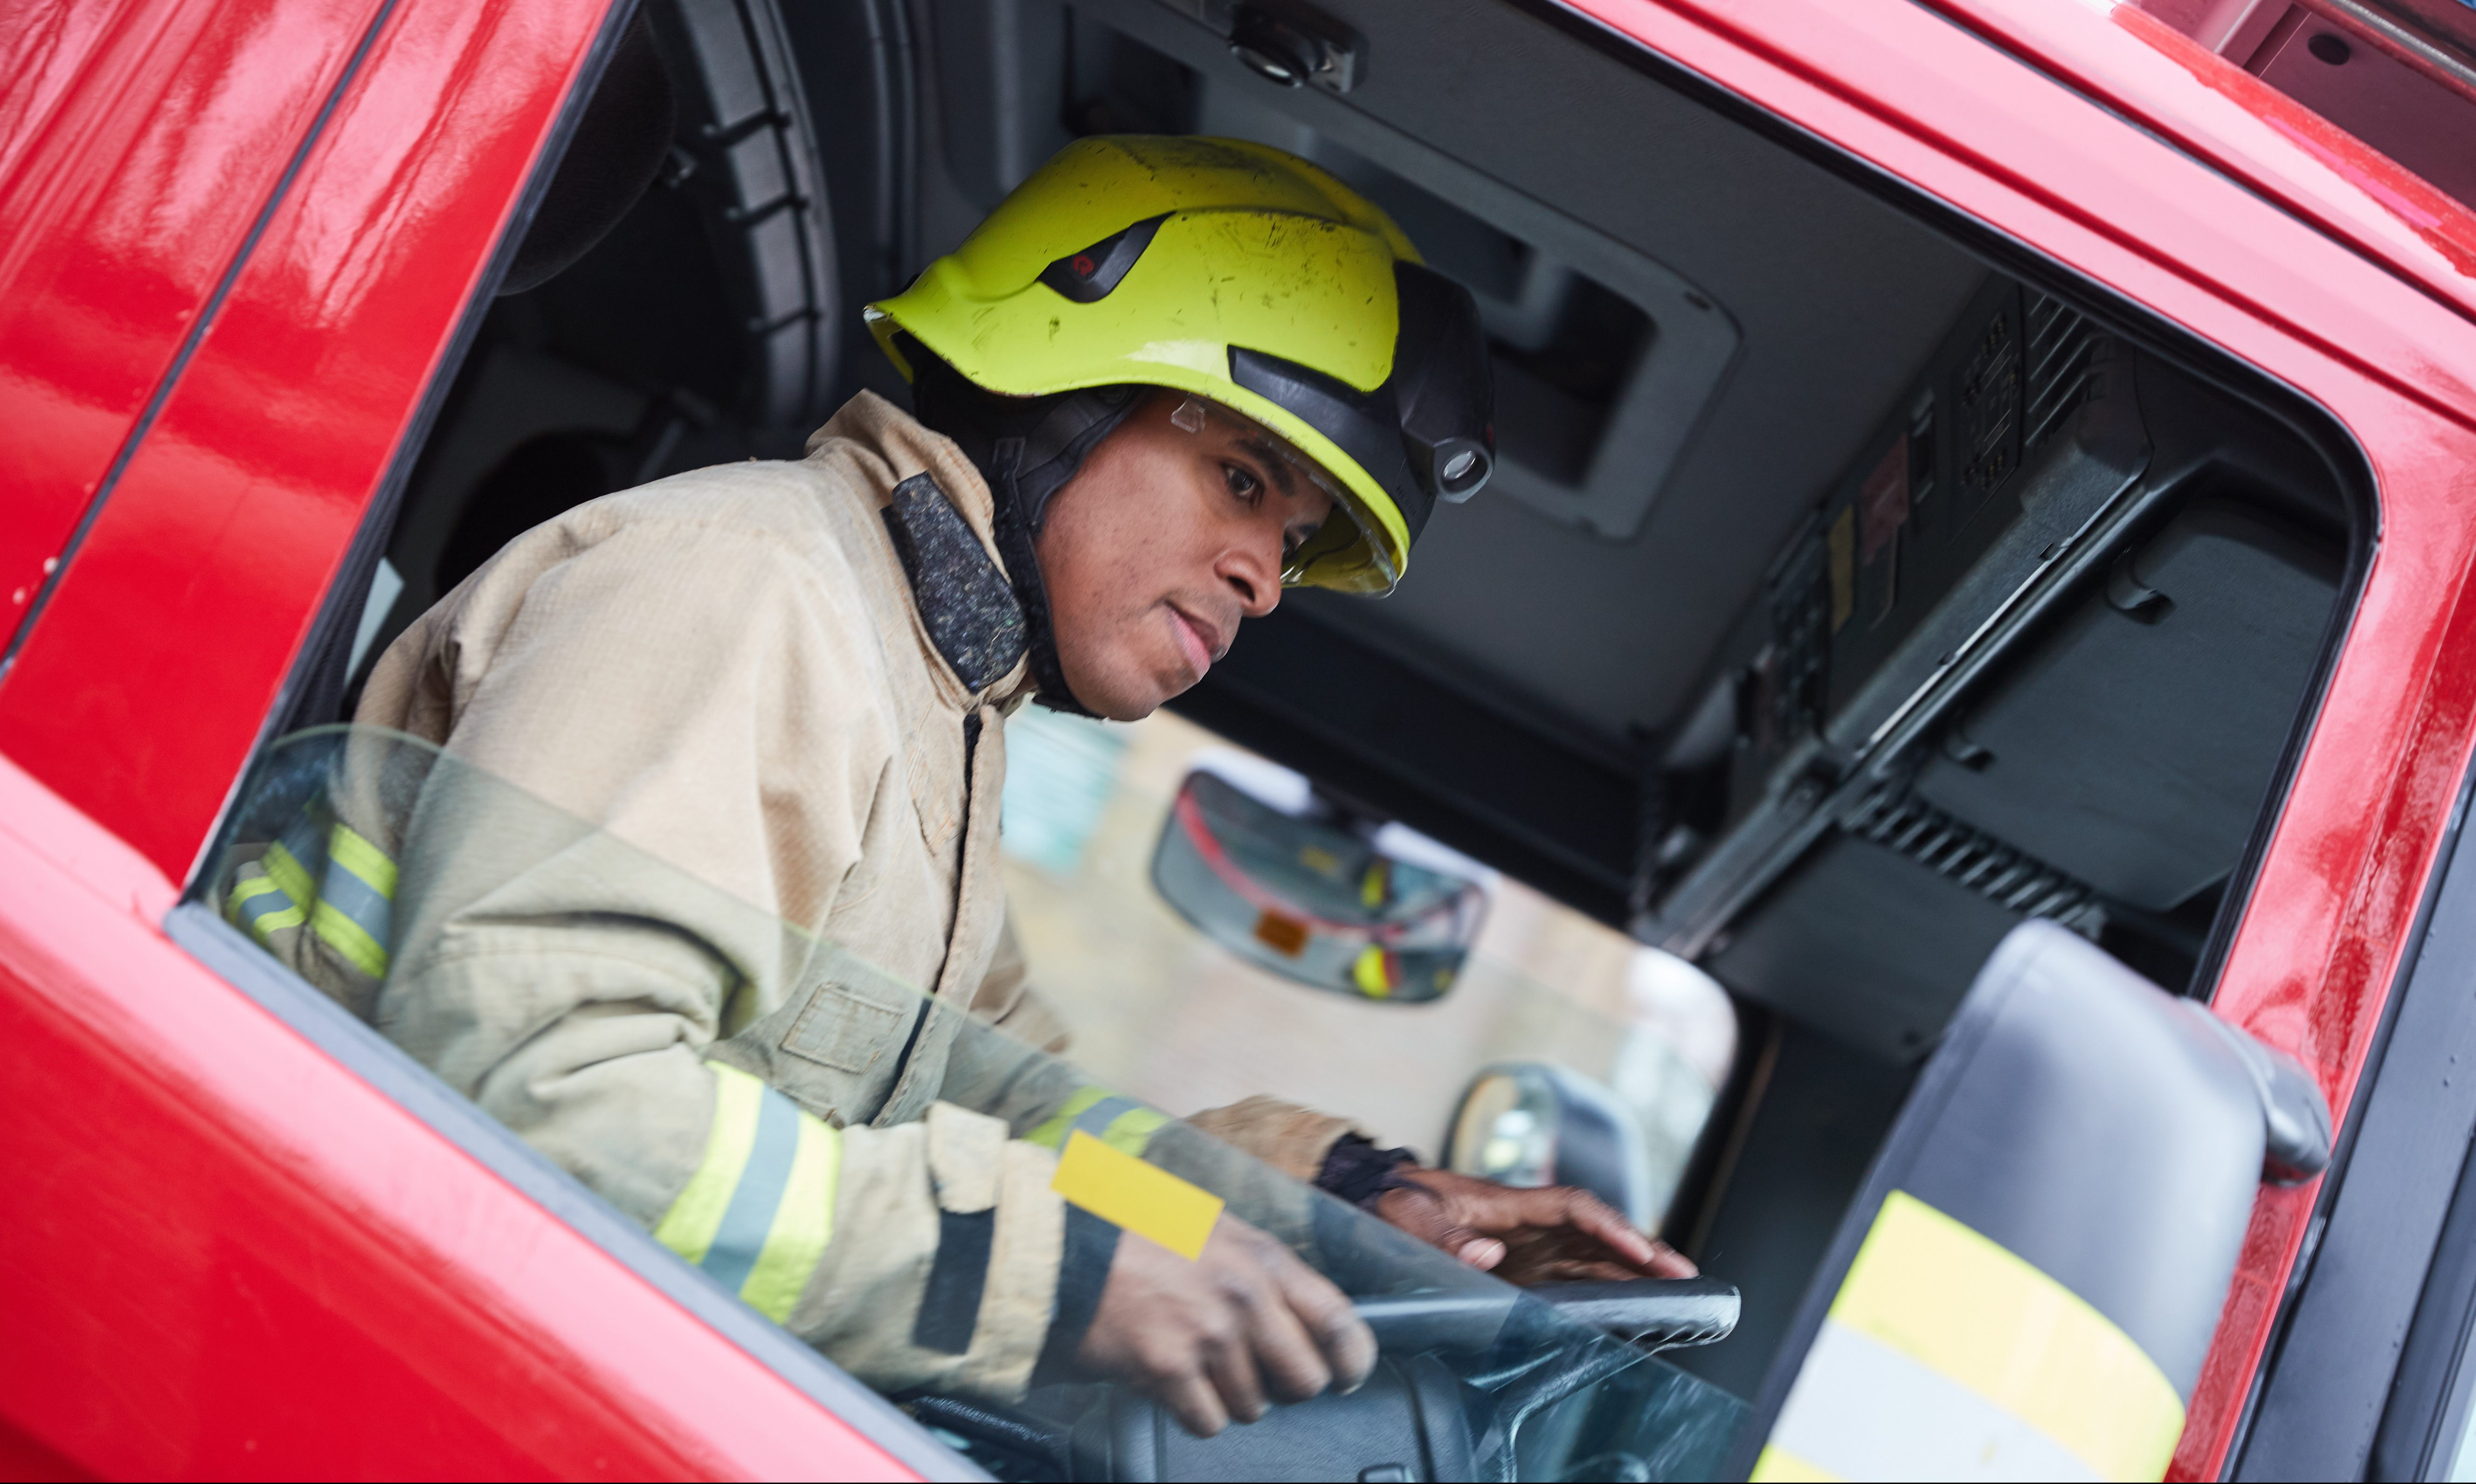 Luton Fire Station – BedfordshireFRS – Action shots (520)